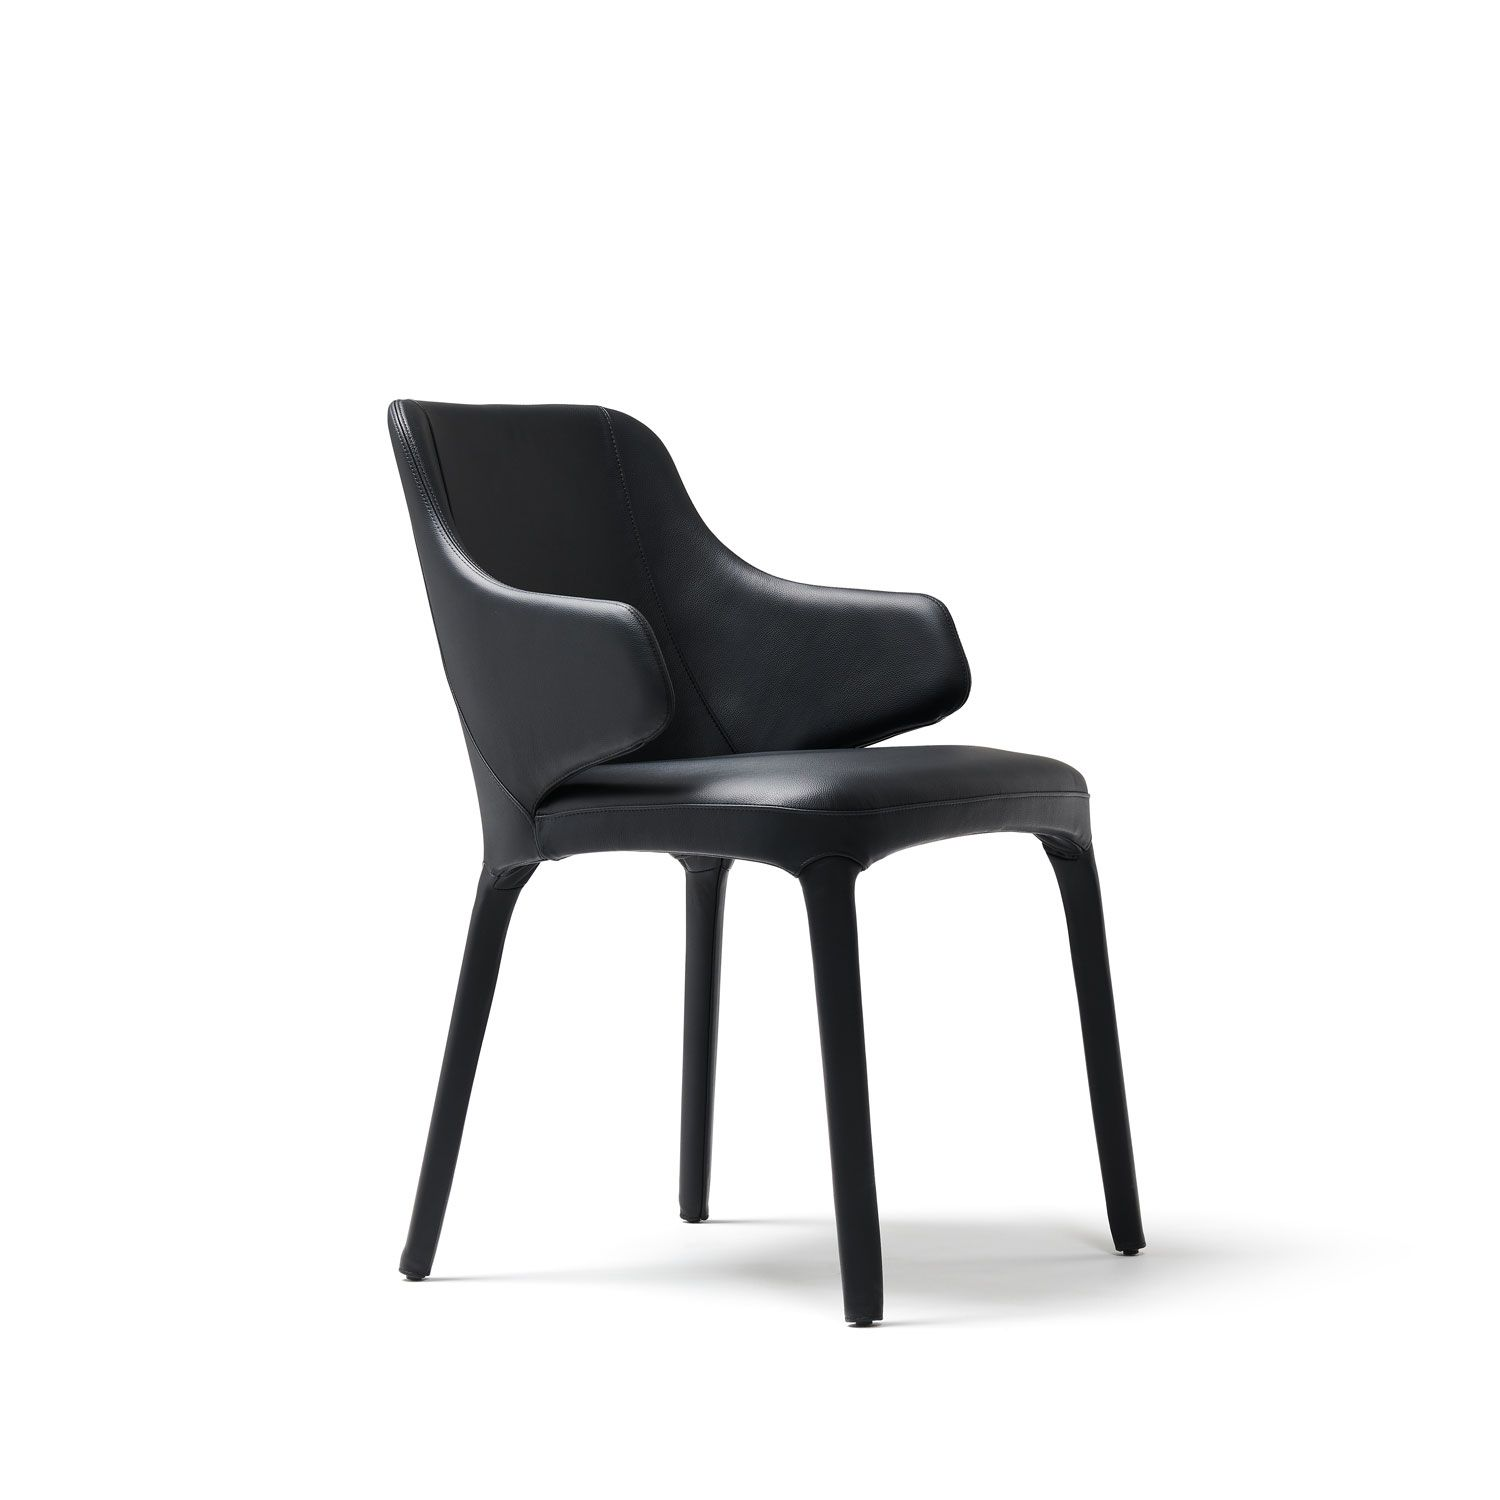 Discounted Furniture Stores Near Me: Luxury Italian Upholstered Wanda Armchair